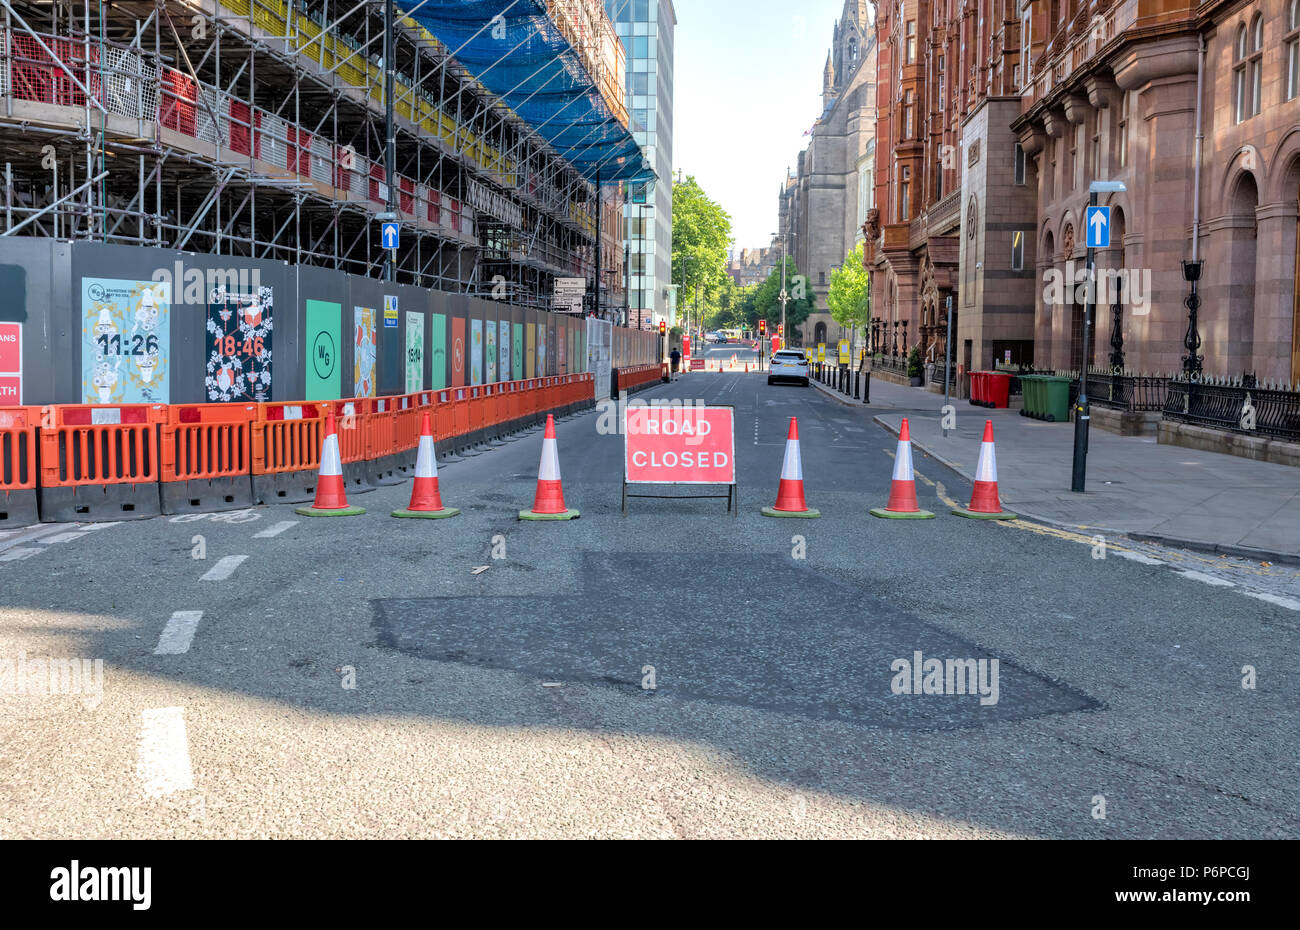 Cones and a Road Closed sign indicate a closed off road in Manchester city centre, UK. - Stock Image